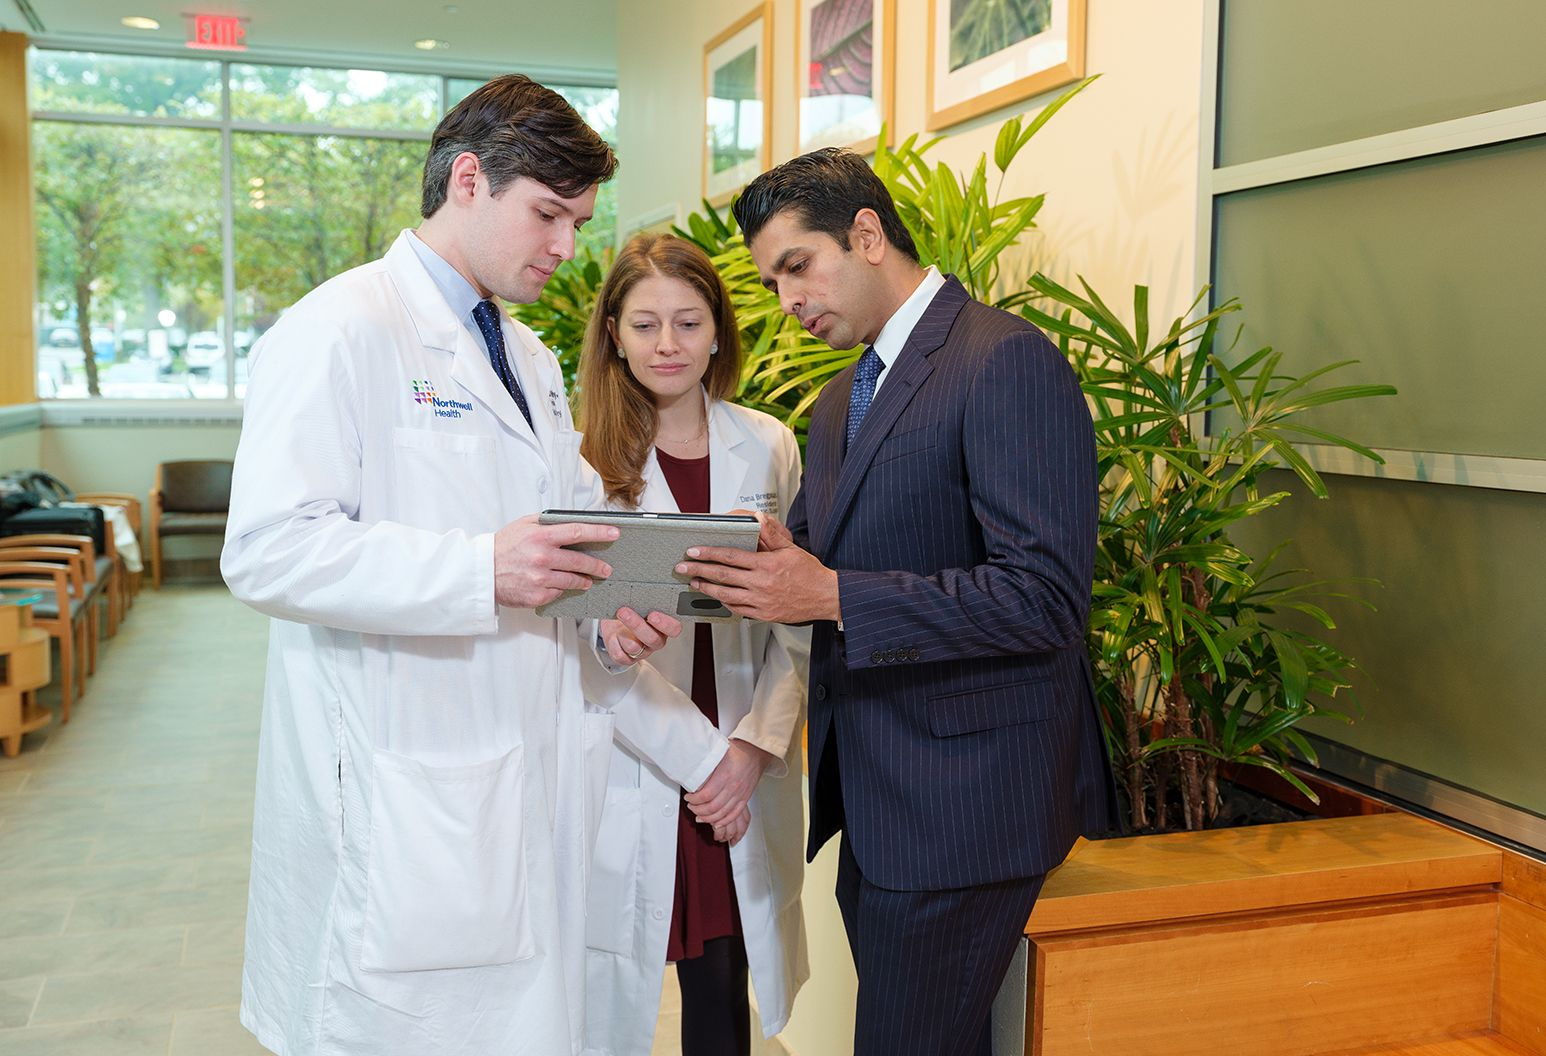 A male resident and female resident, both in white lab coats, review information on a tablet with a man in a navy business suit.